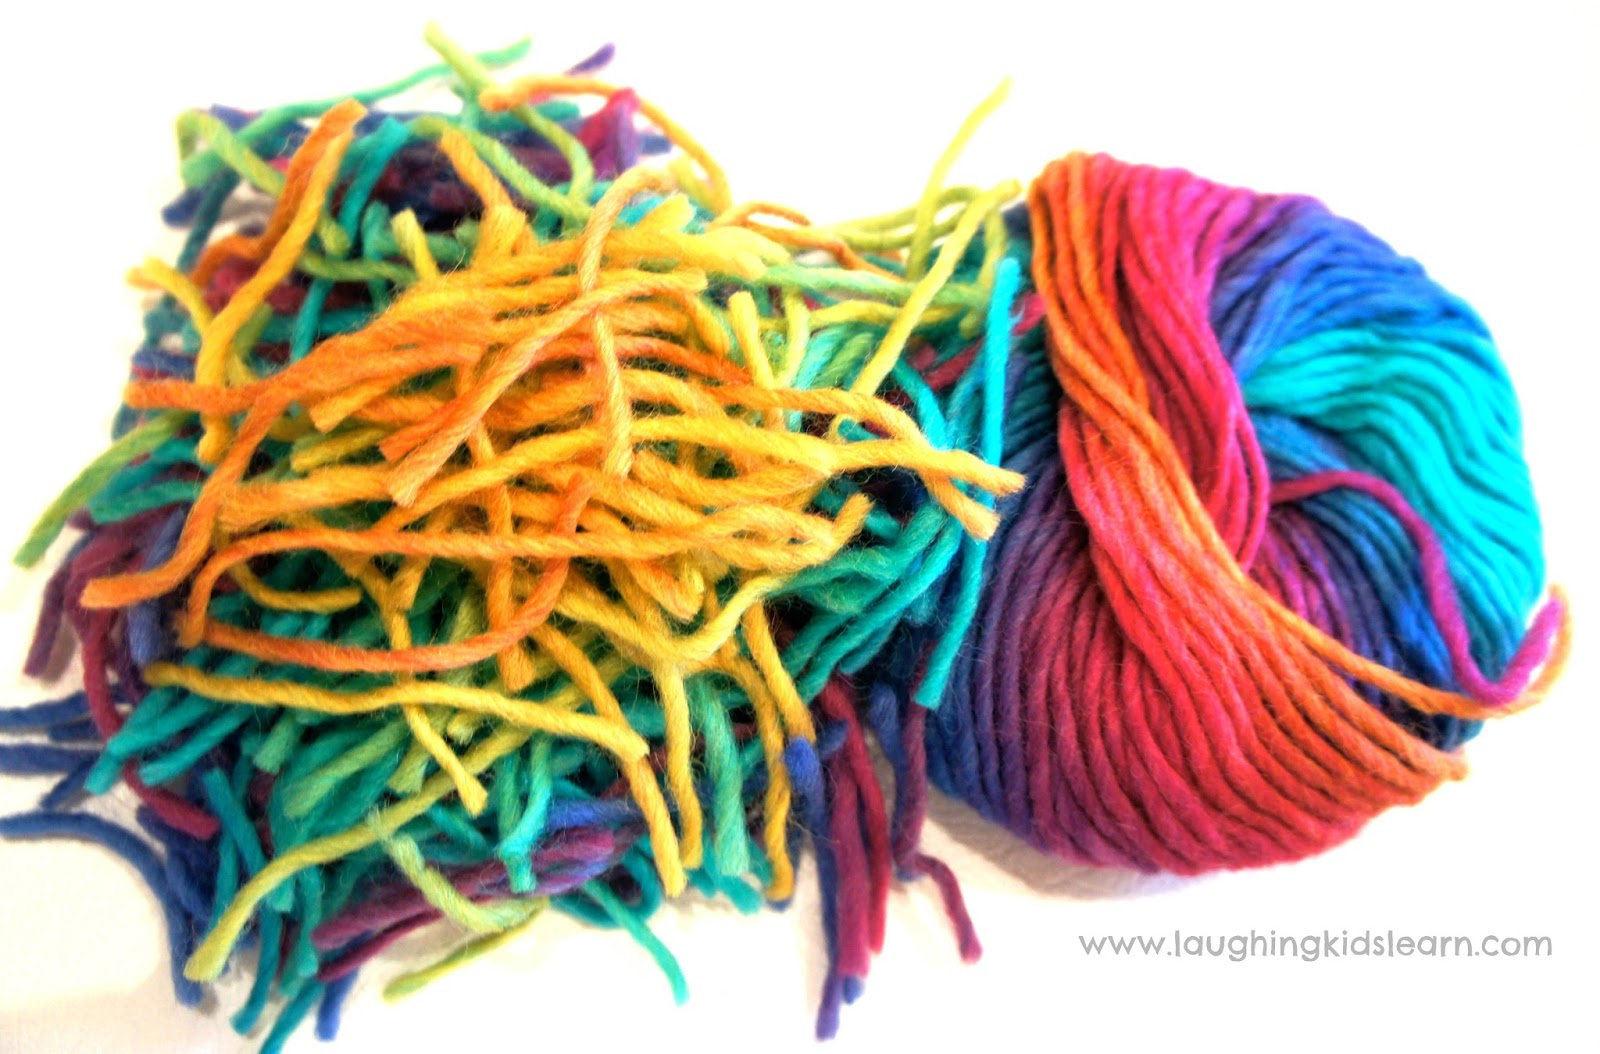 Fun Activity For Kids Using Wool Laughing Kids Learn